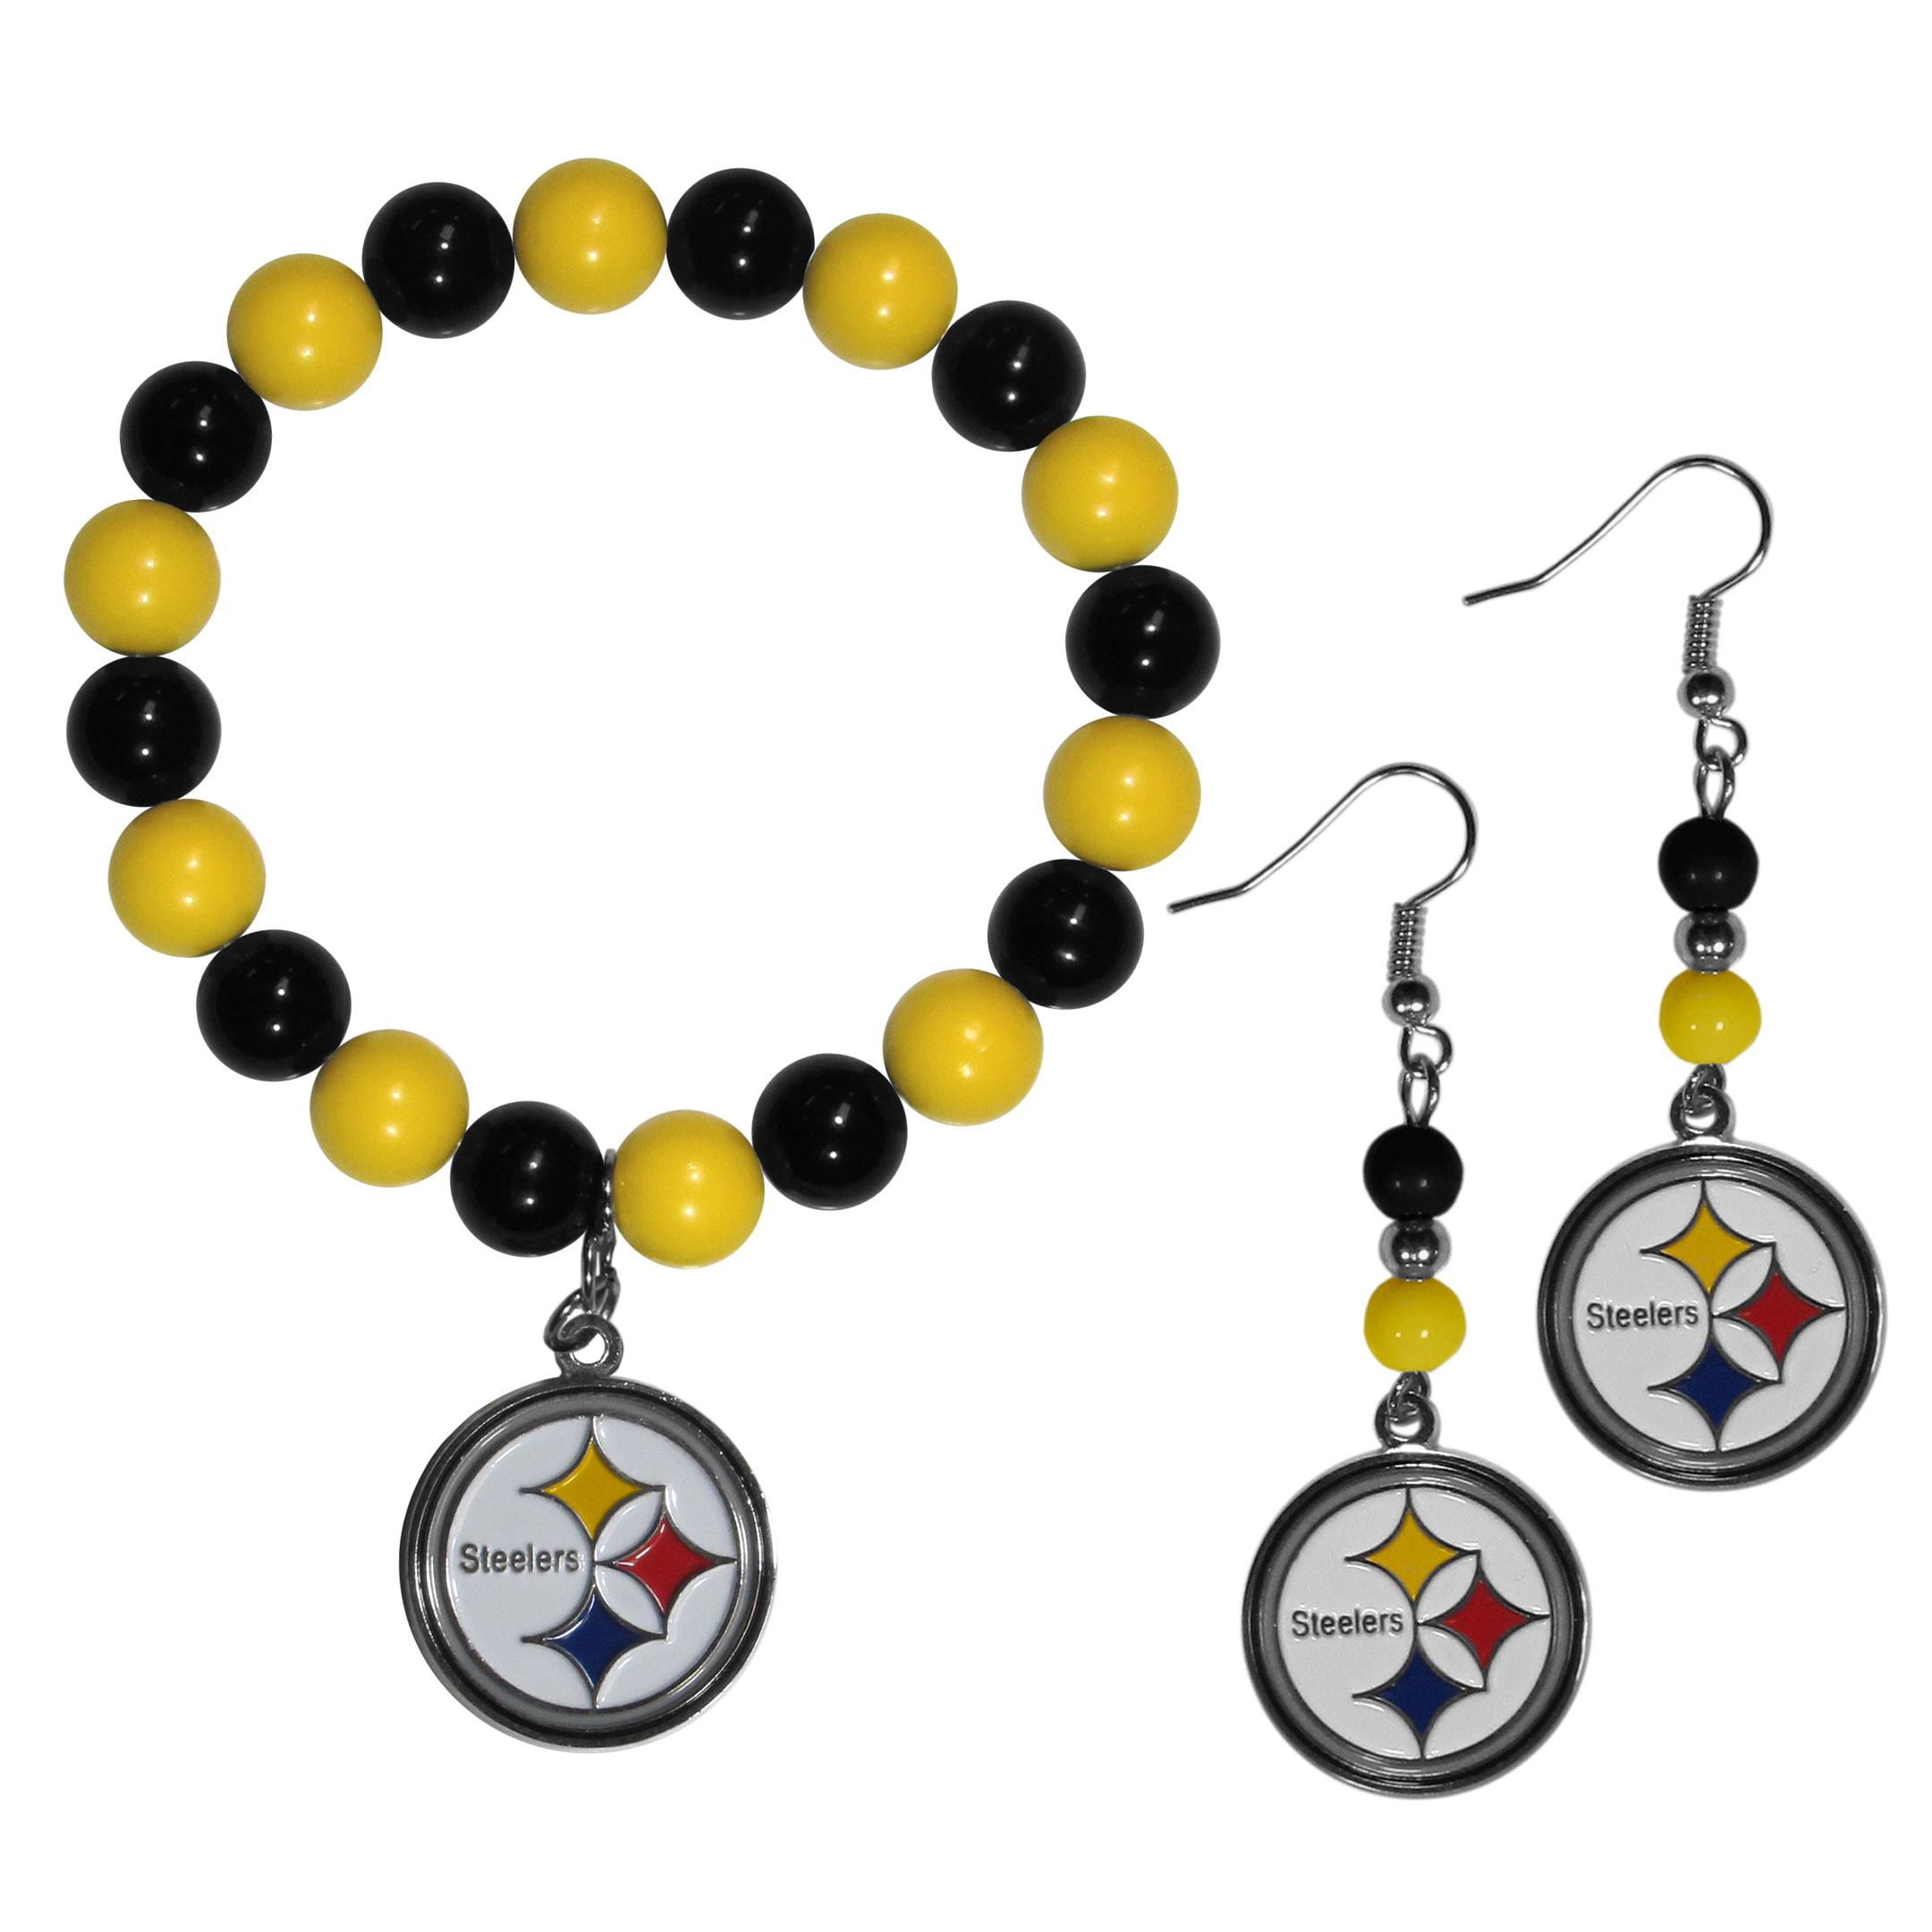 Pittsburgh Steelers Fan Bead Earrings and Bracelet Set - This fun and colorful Pittsburgh Steelers fan bead jewelry set is fun and casual with eye-catching beads in bright team colors. The fashionable dangle earrings feature a team colored beads that drop down to a carved and enameled charm. The stretch bracelet has larger matching beads that make a striking statement and have a matching team charm. These sassy yet sporty jewelry pieces make a perfect gift for any female fan. Spice up your game-day outfit with these fun colorful earrings and bracelet that are also cute enough for any day.